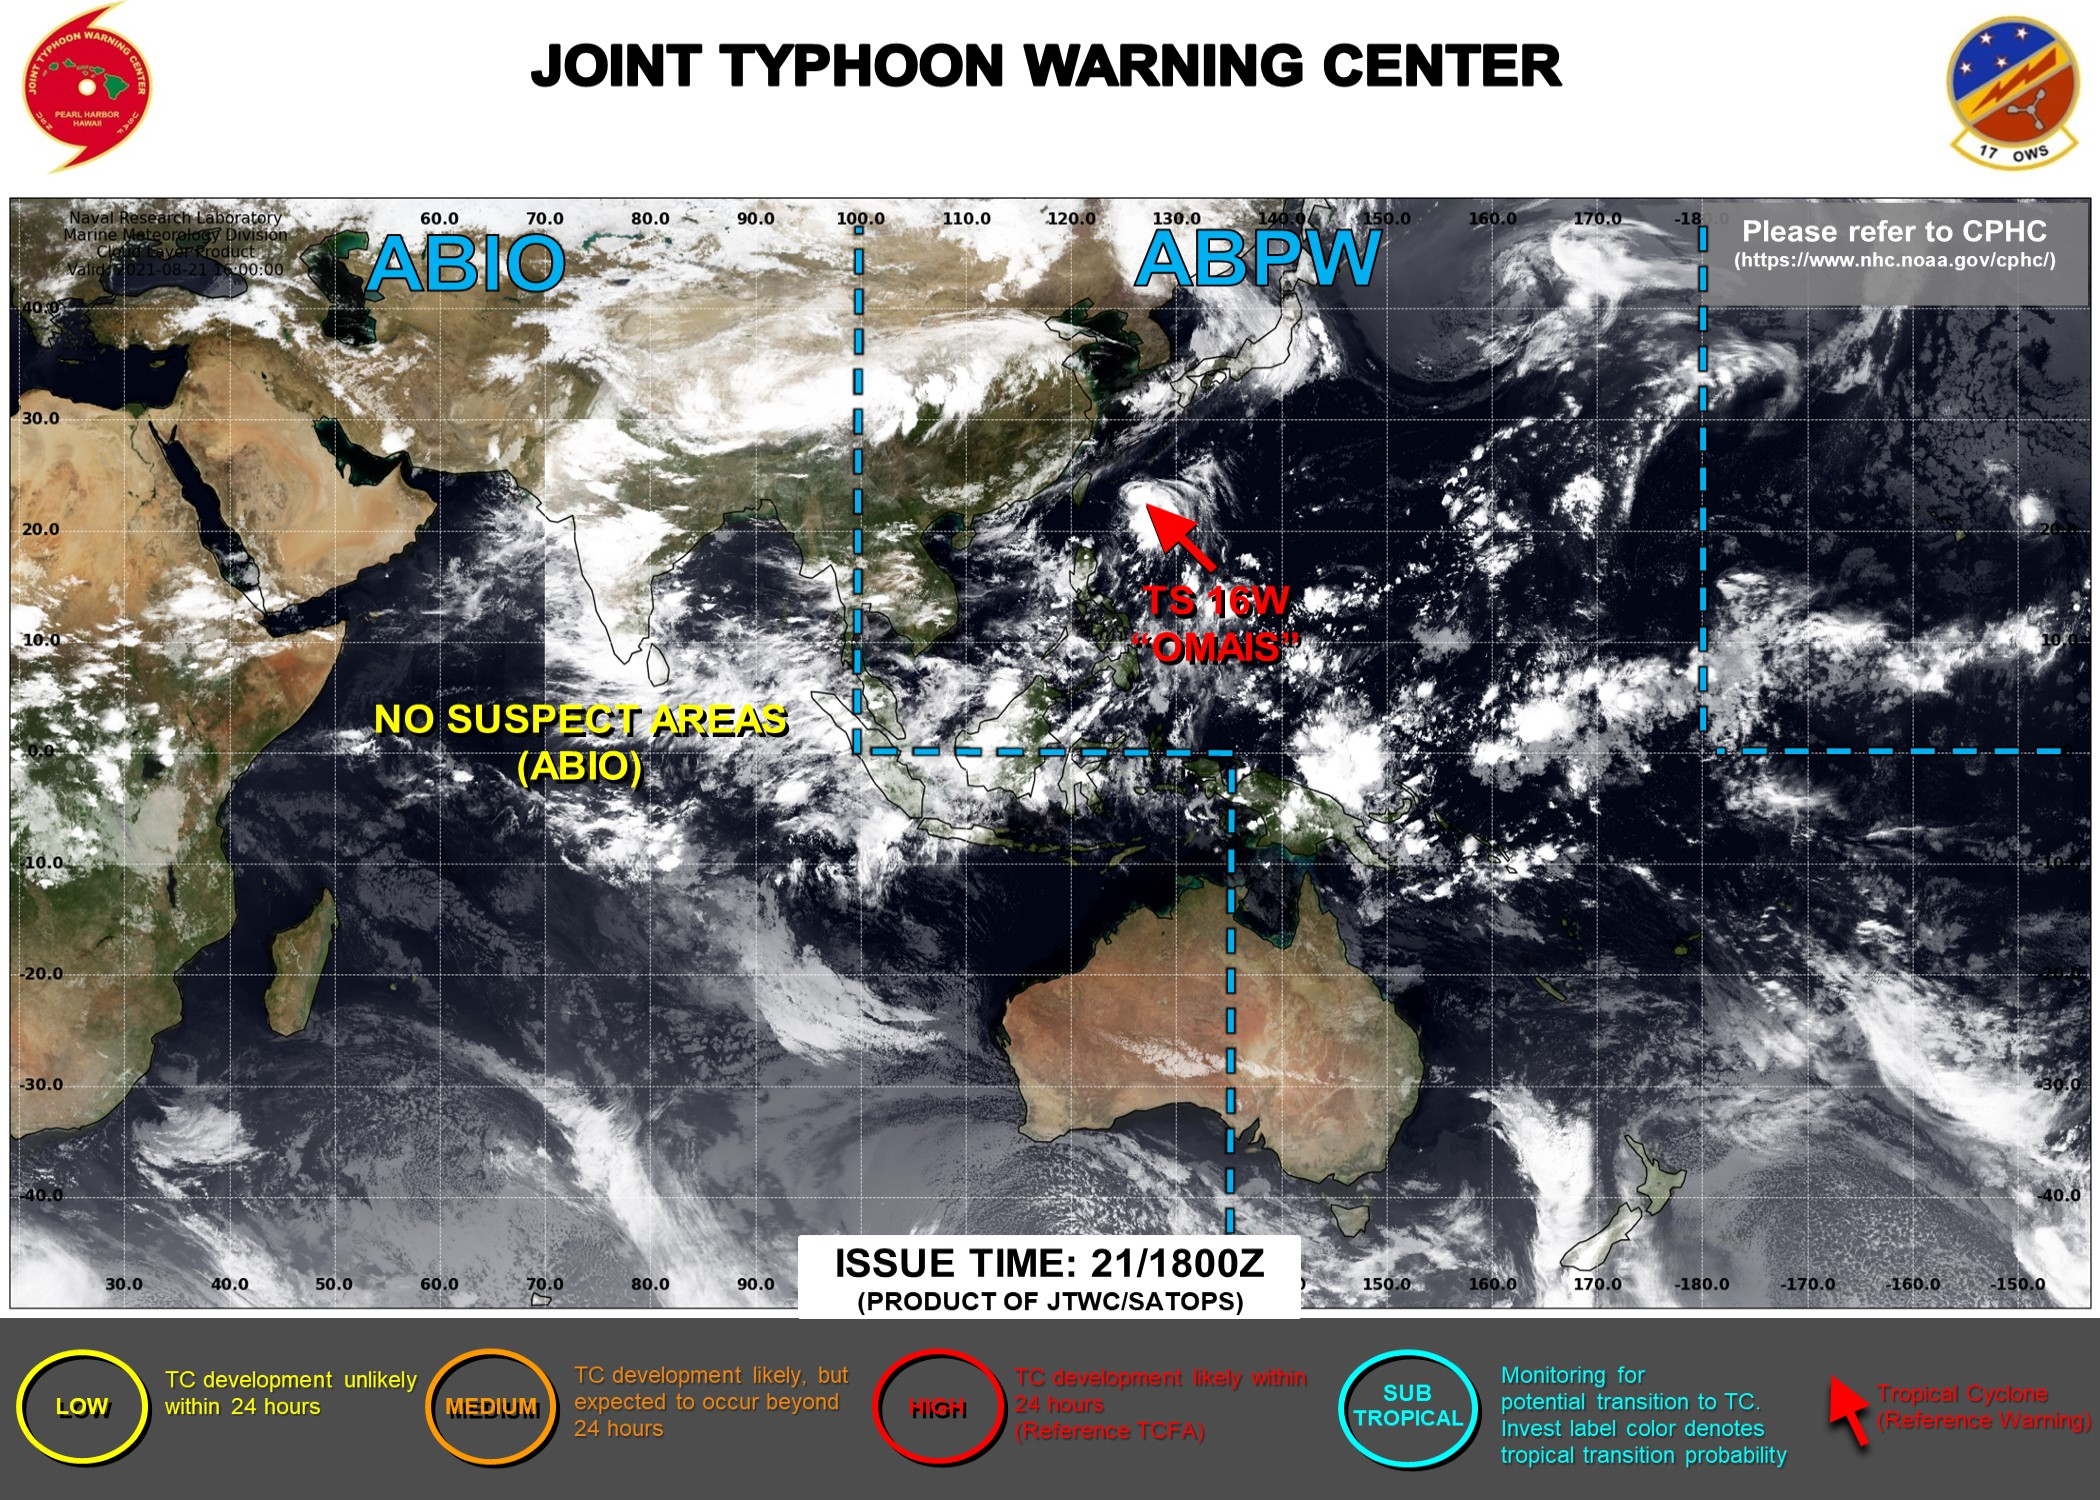 Western Pacific: 16W(OMAIS) tracking Southwest of Okinawa//Eastern Pacific: remnants of Major Hurricane 07L(GRACE): Tropical Cyclone Formation Alert,22/03utc updates